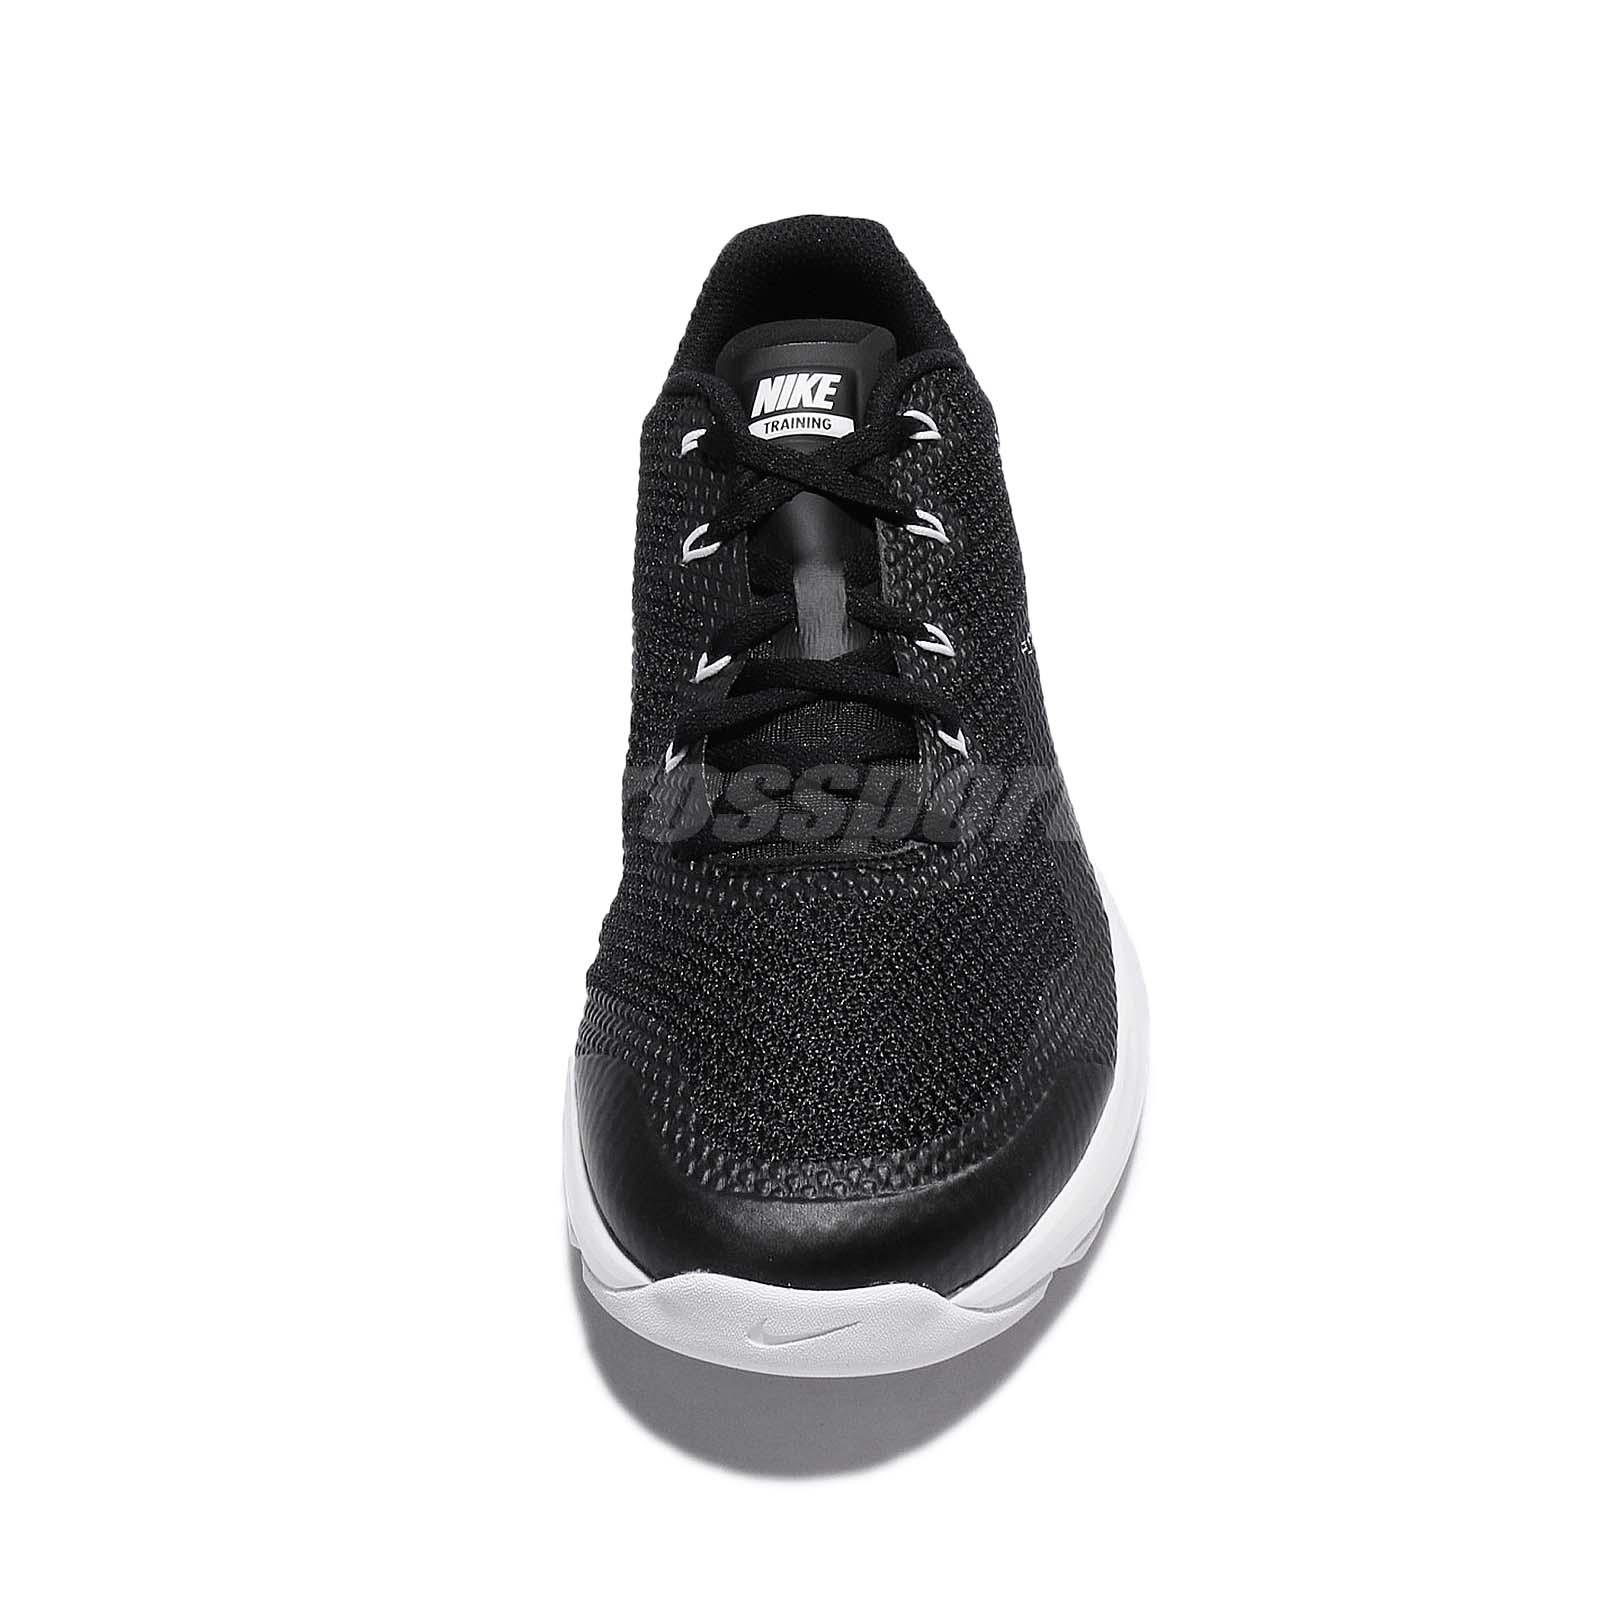 online store a6d09 7043b Athletic Shoes Men Nike Metcon Repper DSX Training Athletic Shoes Black   White  898048-002